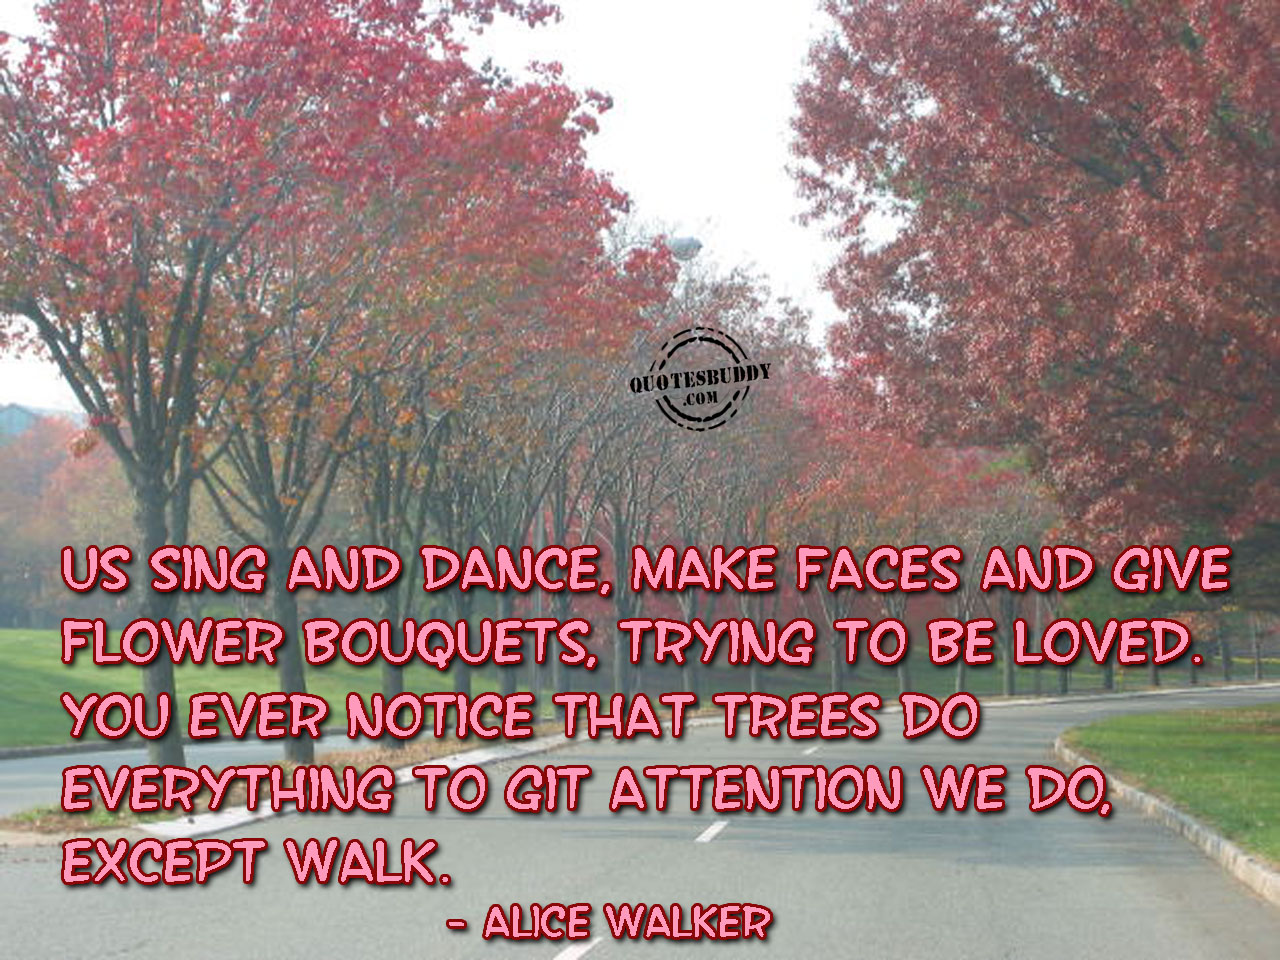 You Ever Notice That Trees Do Everything To Get Attention We Do Accept Walk ~ Good Day Quote